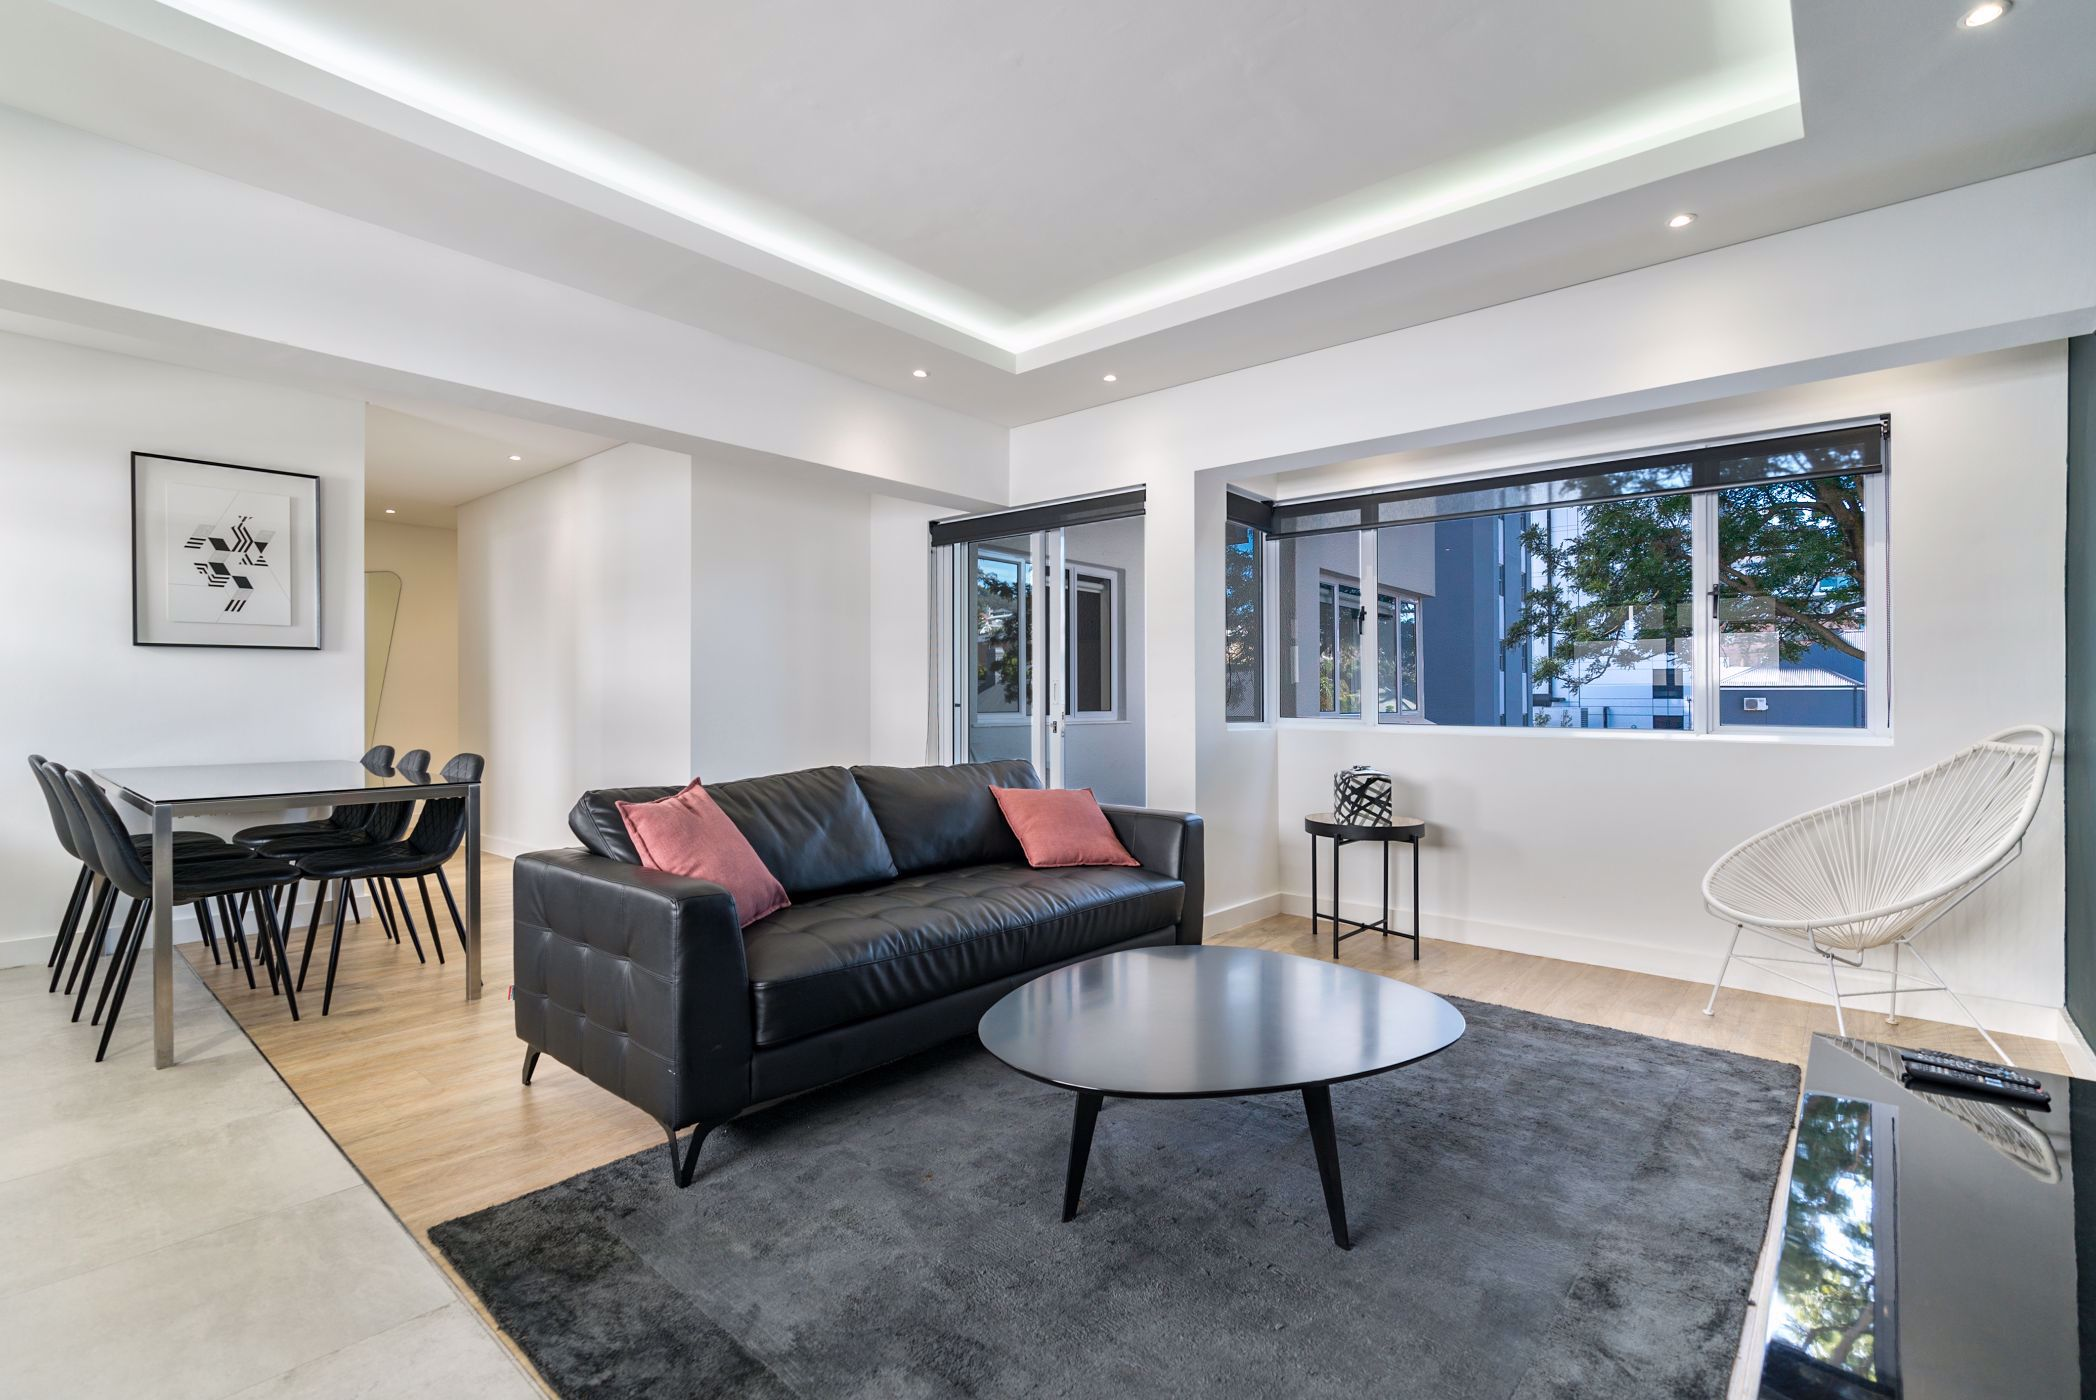 2 bedroom apartment for sale in Green Point (Cape Town)